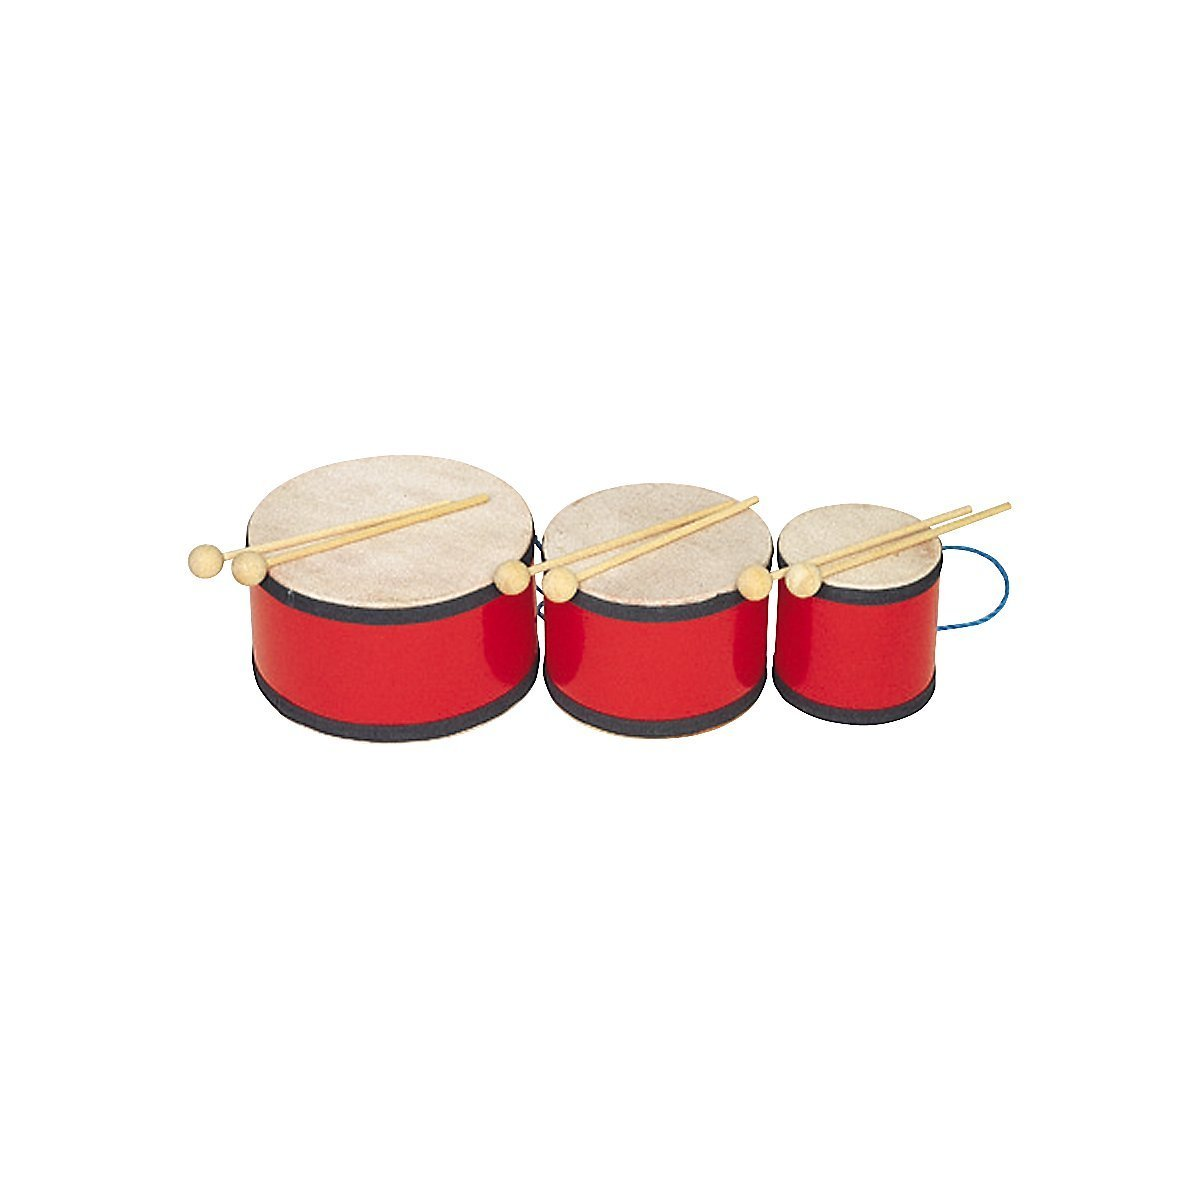 Rhythm Band Indian Tom Tom with Mallets 5x5 by Rhythm Band